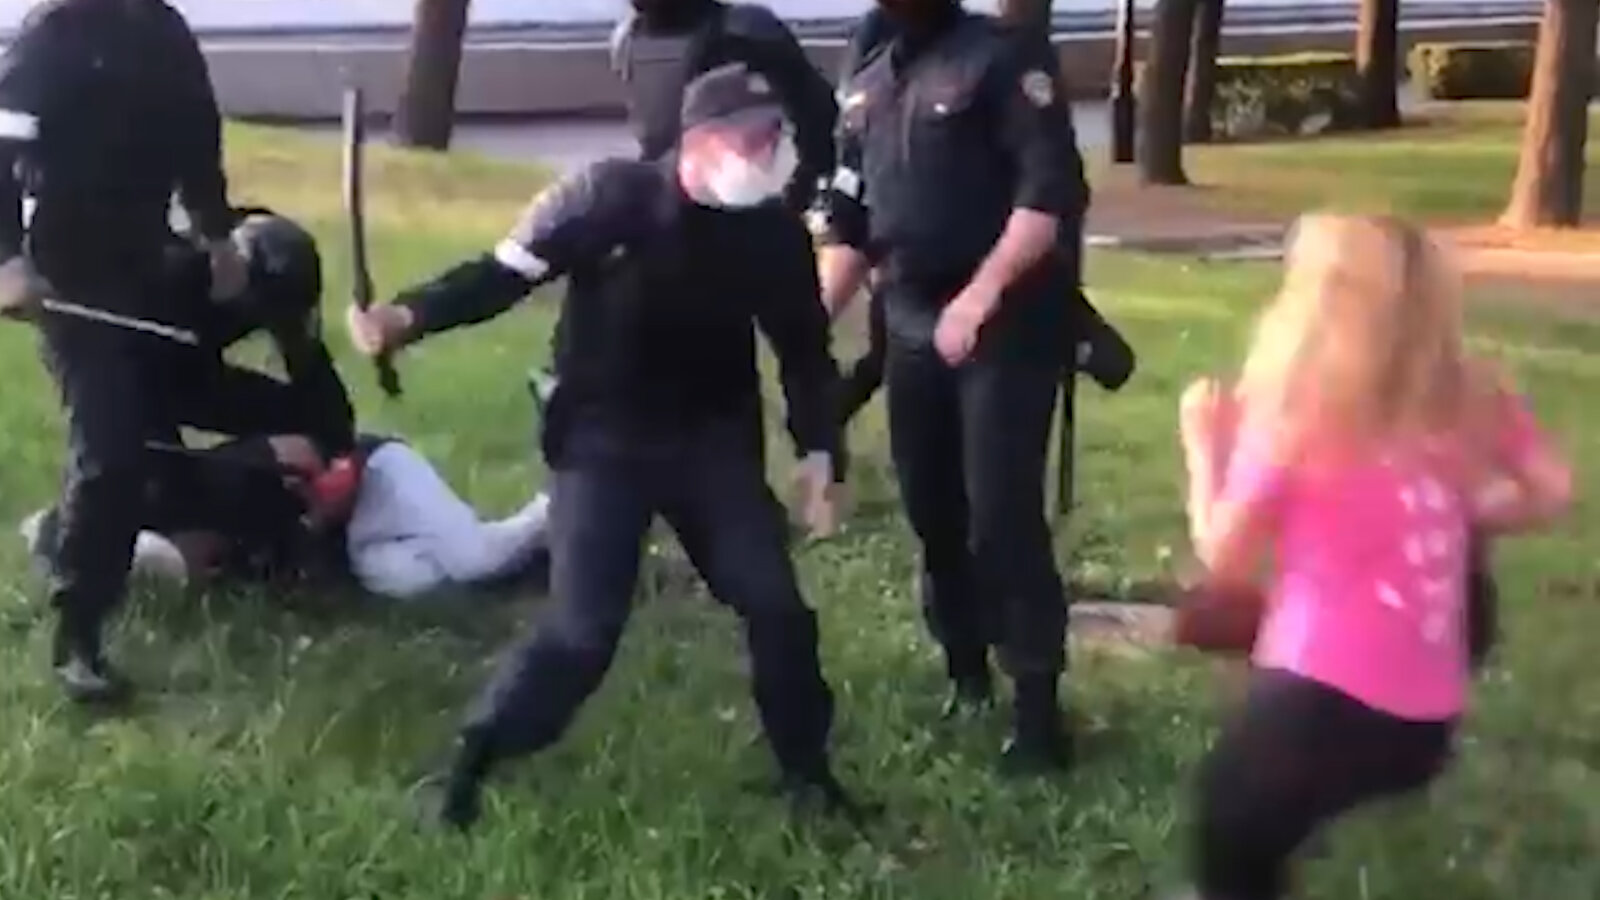 A Crackdown in Belarus Backfires. Here's What Videos Show.